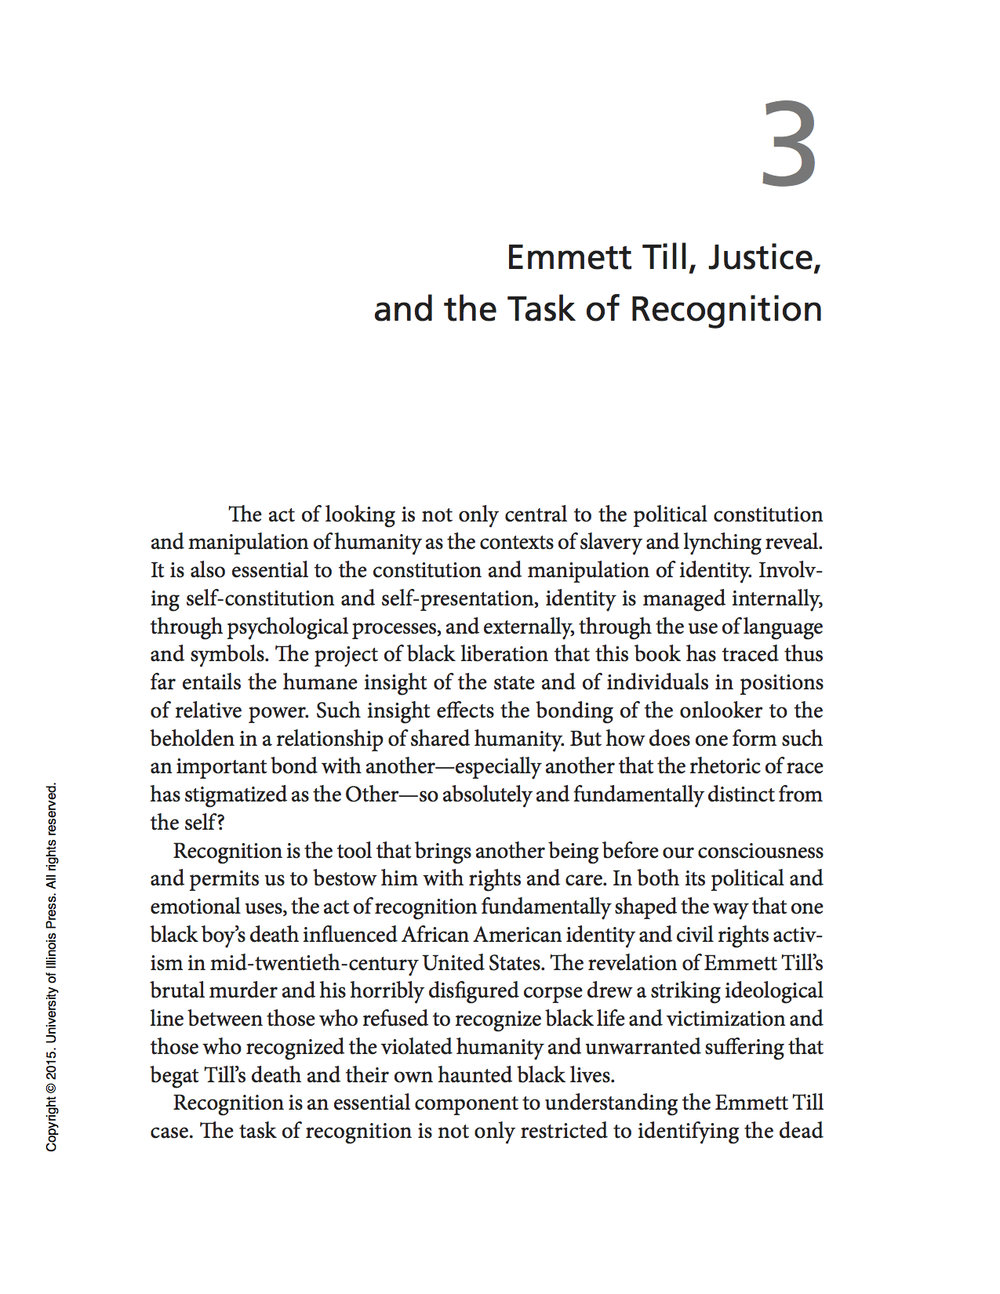 "Courtney R. Baker, ""Emmett Till, Justice, and the Task of Recognition,"" Humane Insight: Looking at Images of African American Suffering and Death (Urbana-Champaign, IL: University of Illinois Press, 2015). 69-93, n. 129-32."